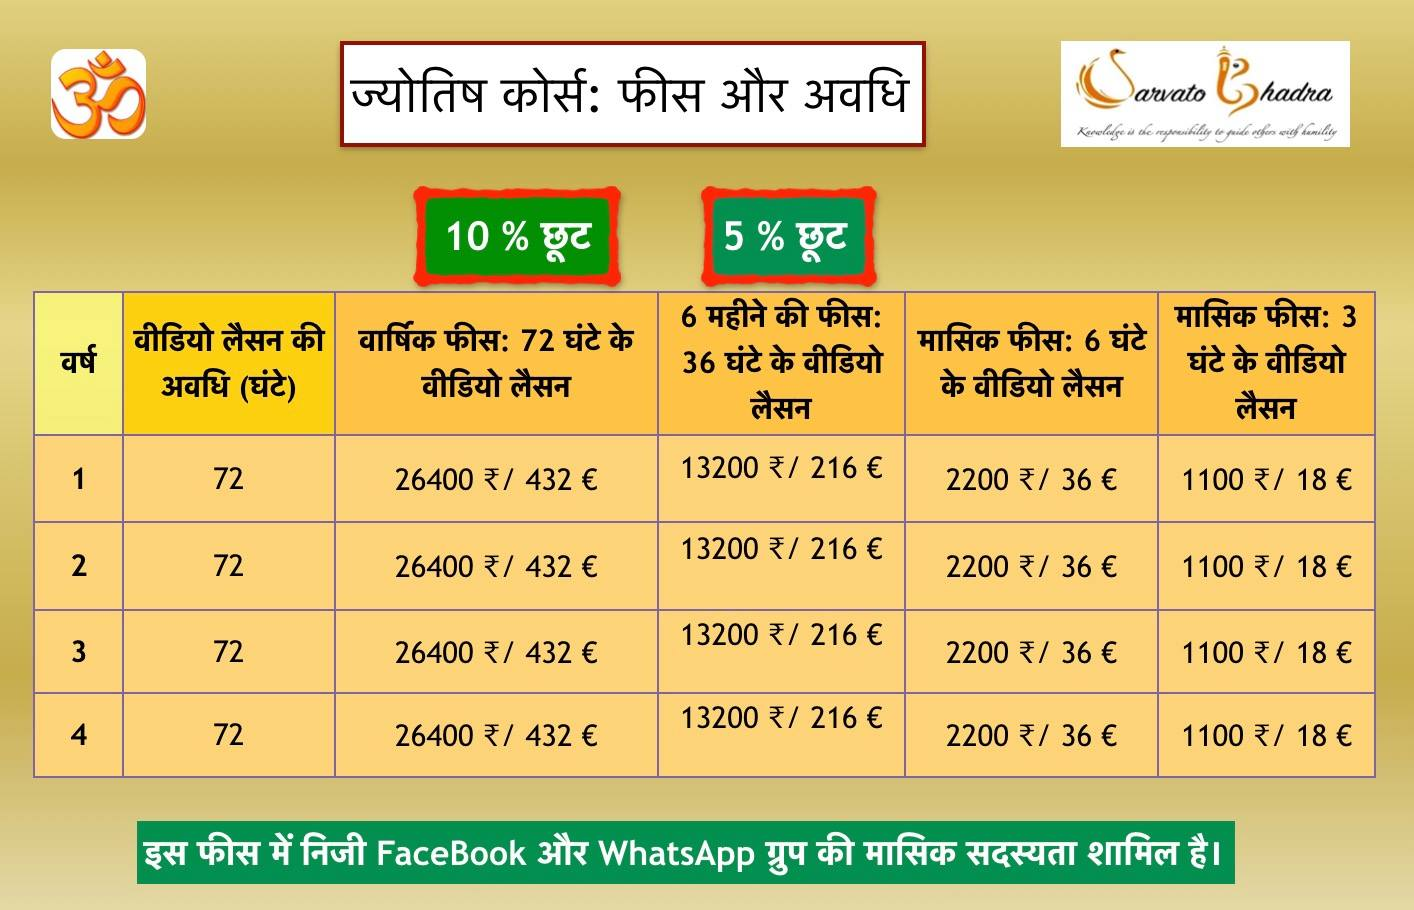 SarvatoBhadra Fees Details Learning Jyotish